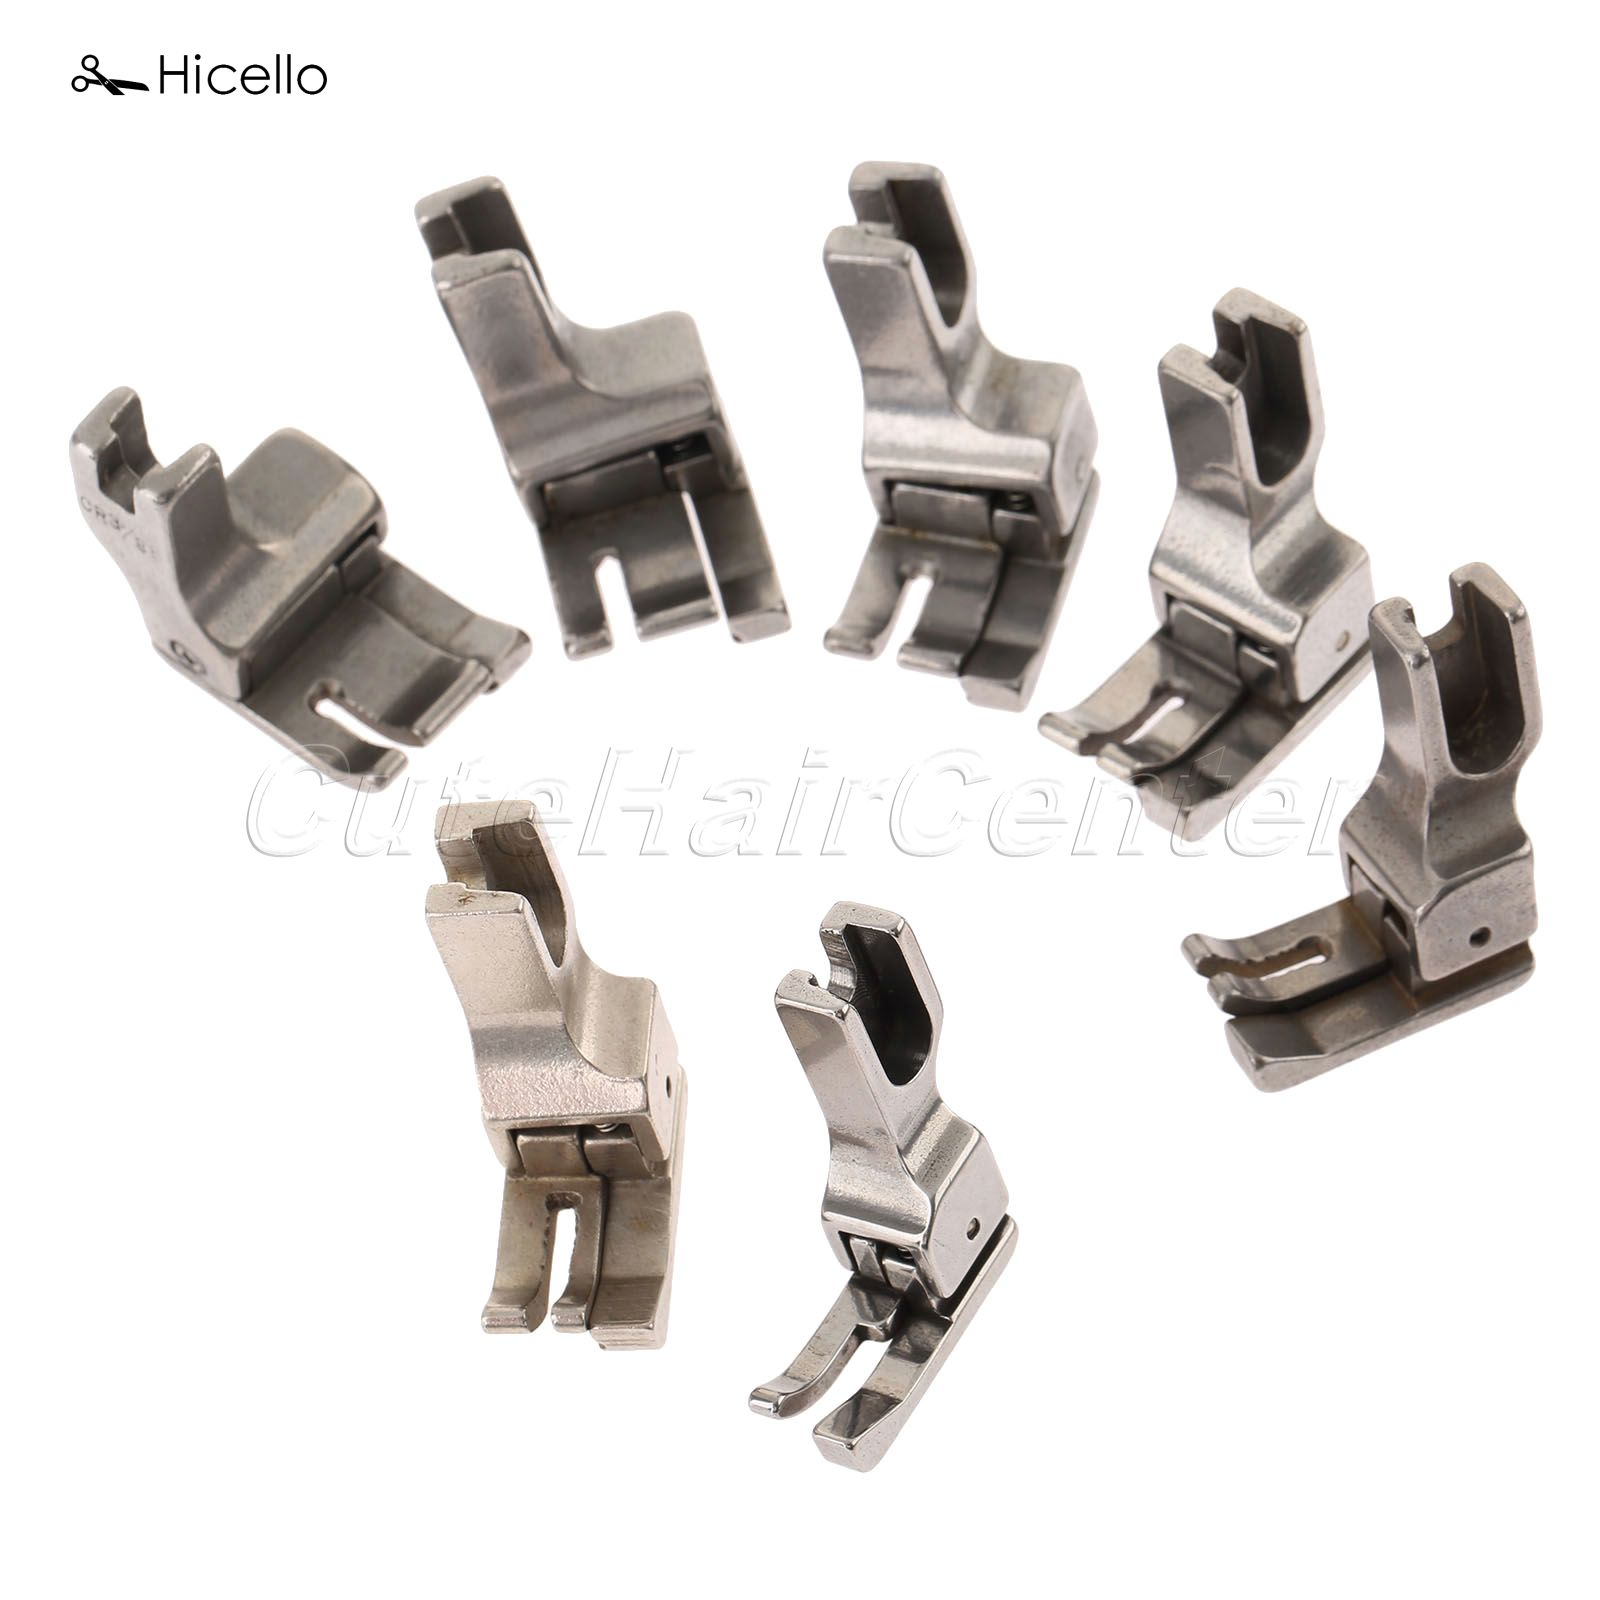 1PC Industrial Presser Foot Sewing Machine Full Steel RIGHT & WIDE Presser Foot 1.6mm/3.2mm/4mm/4.8mm.6.4mm/8mm/9.5mm Costura